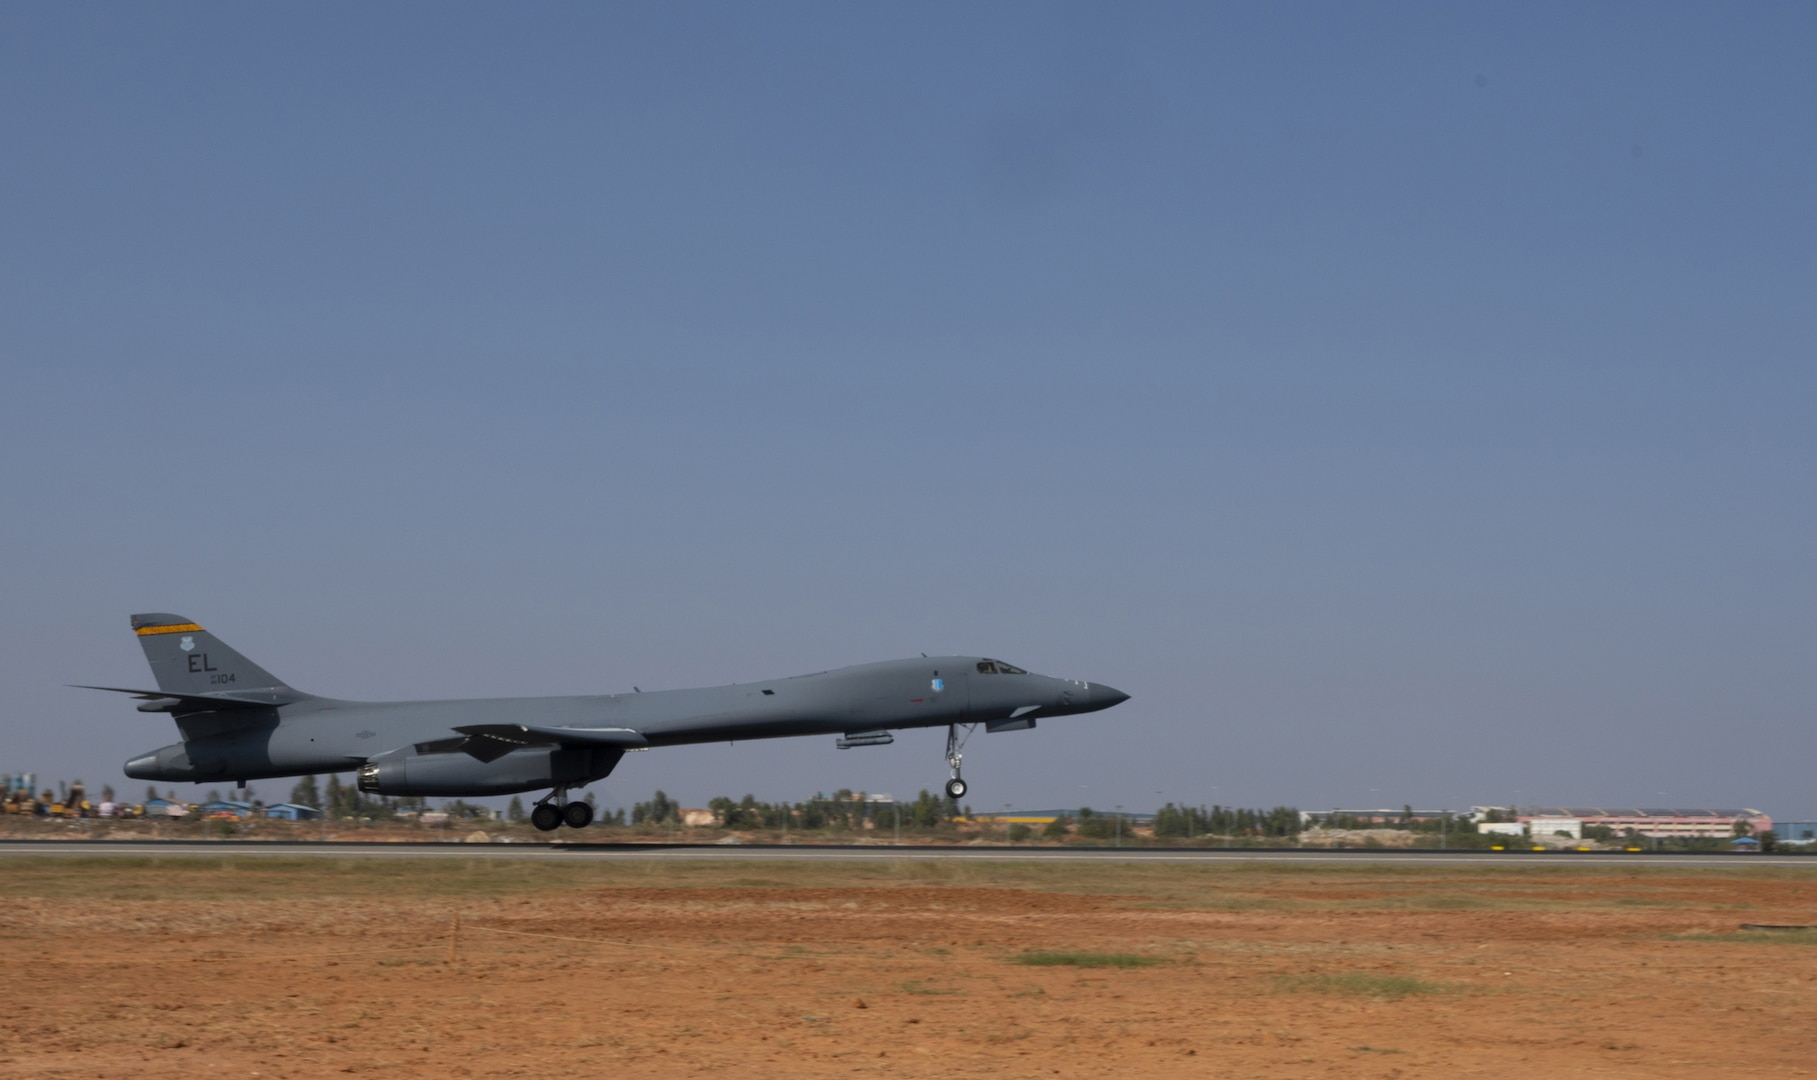 U.S. B-1B Lancer debuts at Aero India 2021